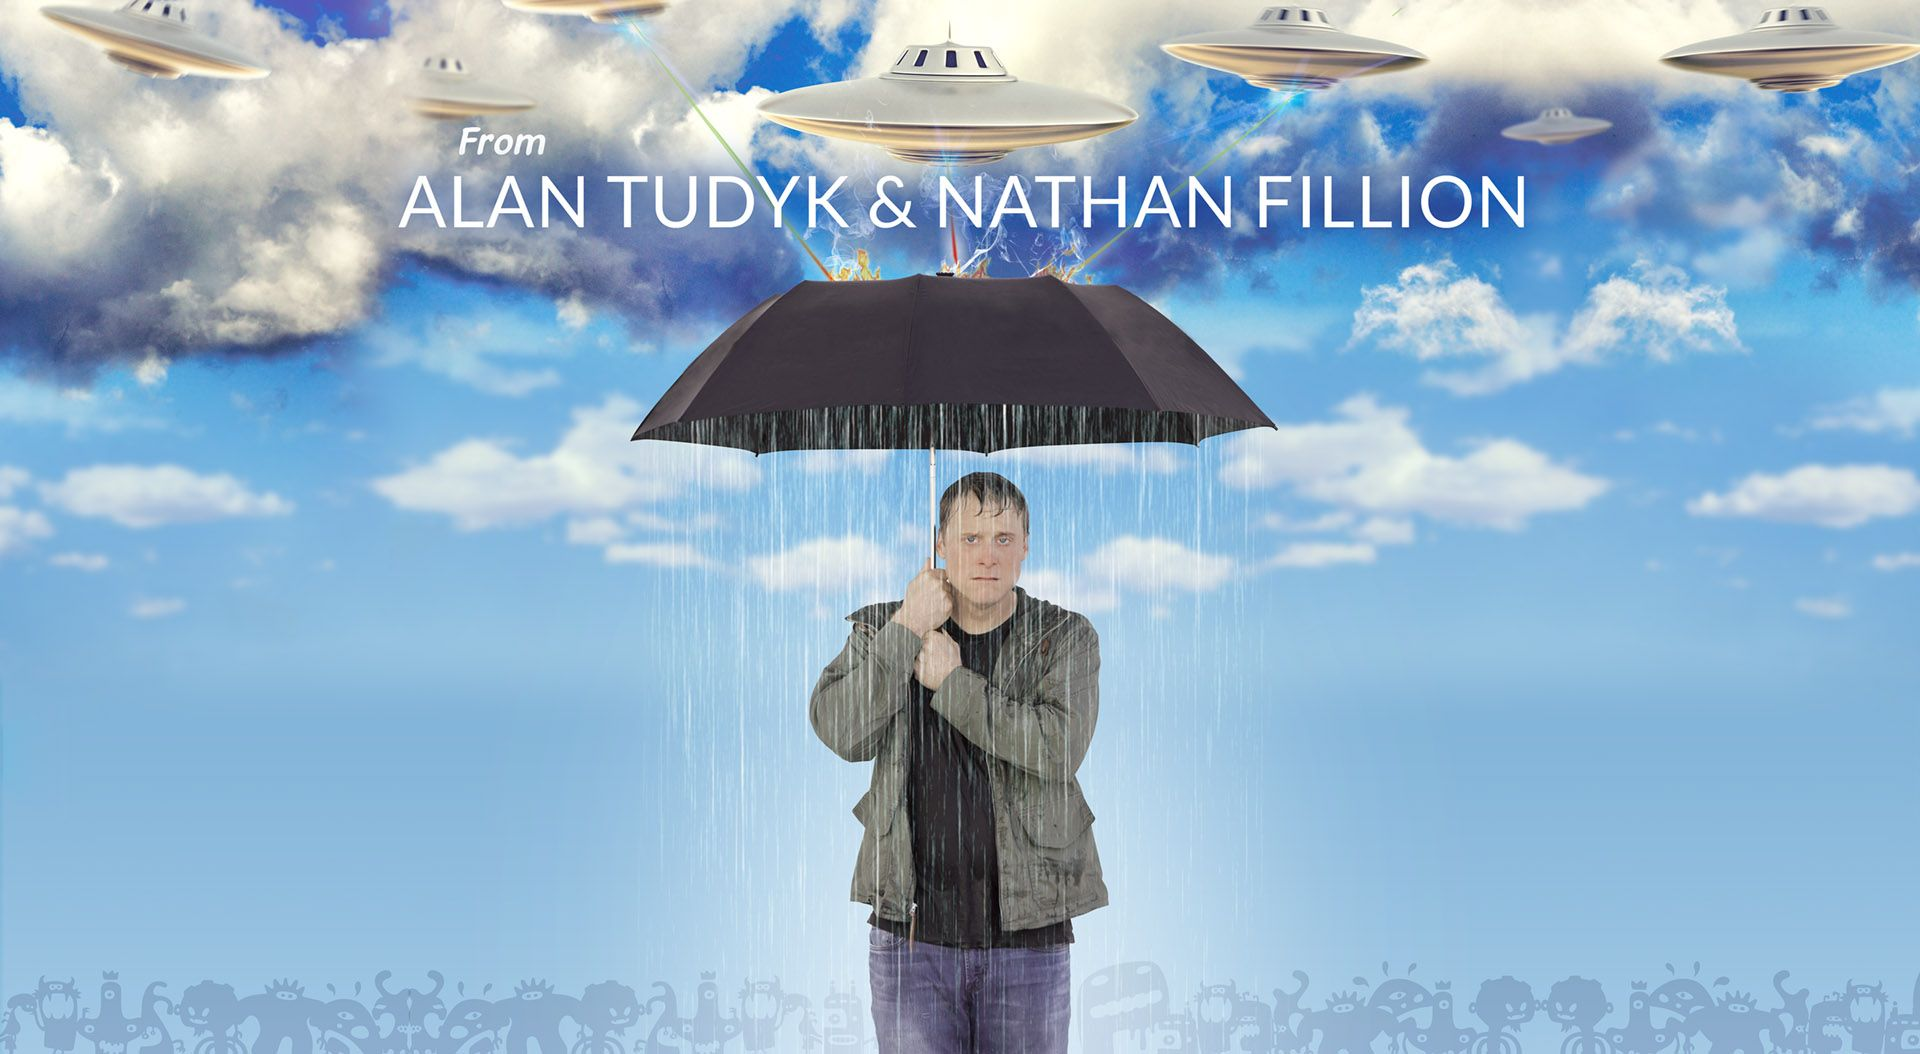 A hilarious series from Alan Tudyk and Nathan Fillion.